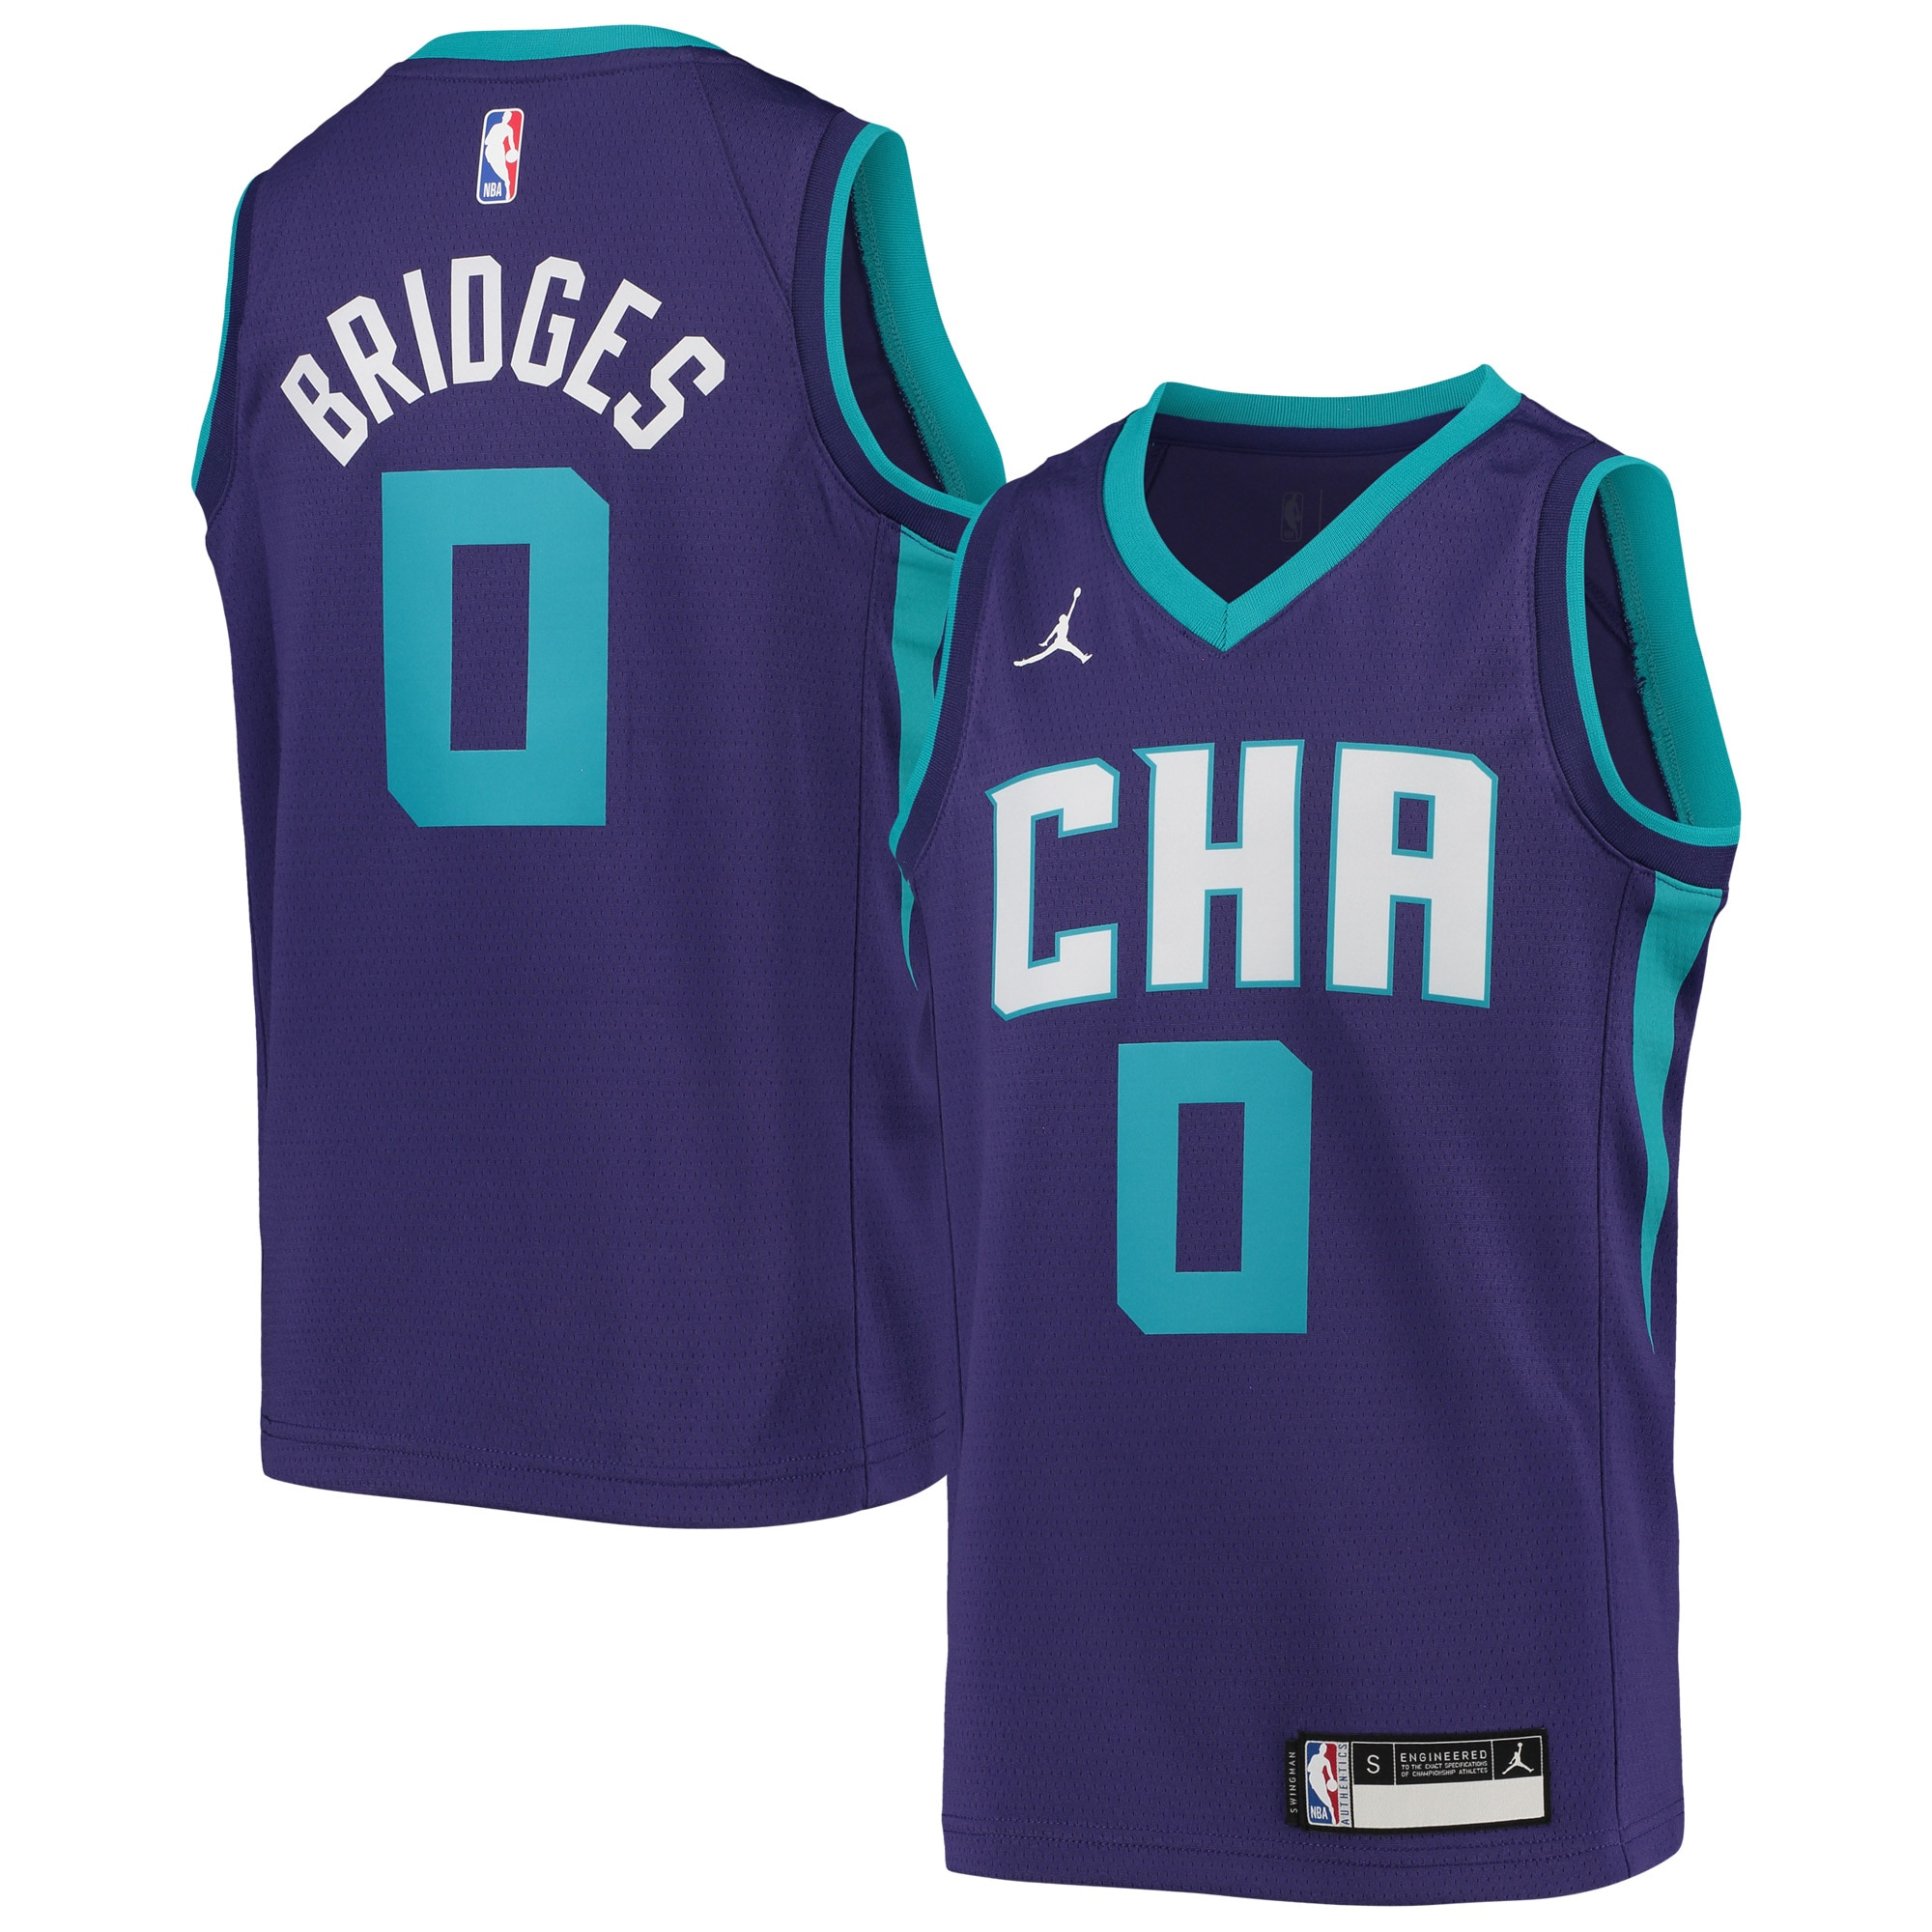 Miles Bridges Charlotte Hornets Nike Youth Swingman Player Jersey - Statement Edition - Purple